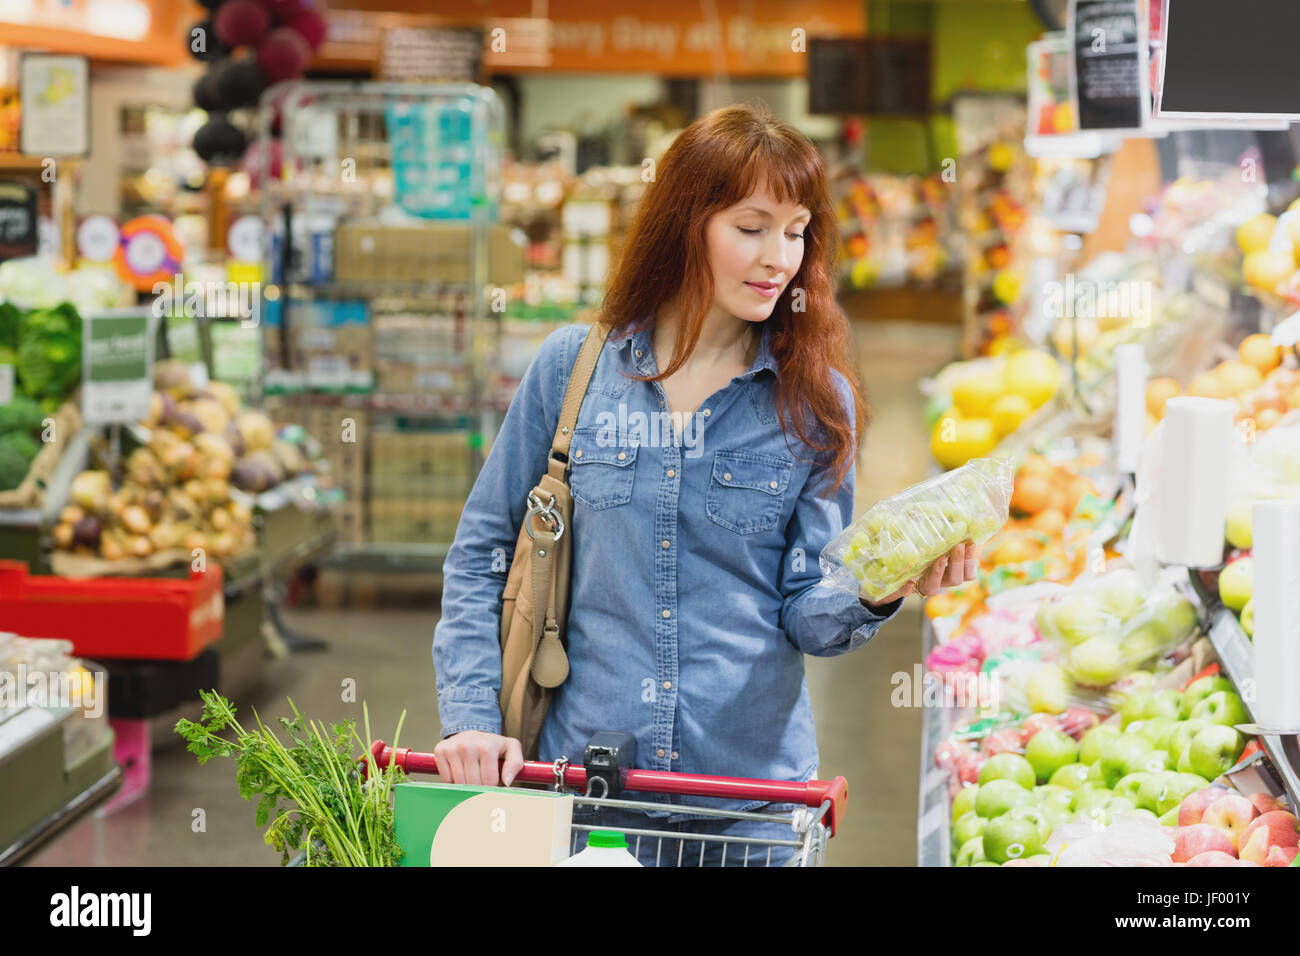 Customer holding a box of grapes - Stock Image